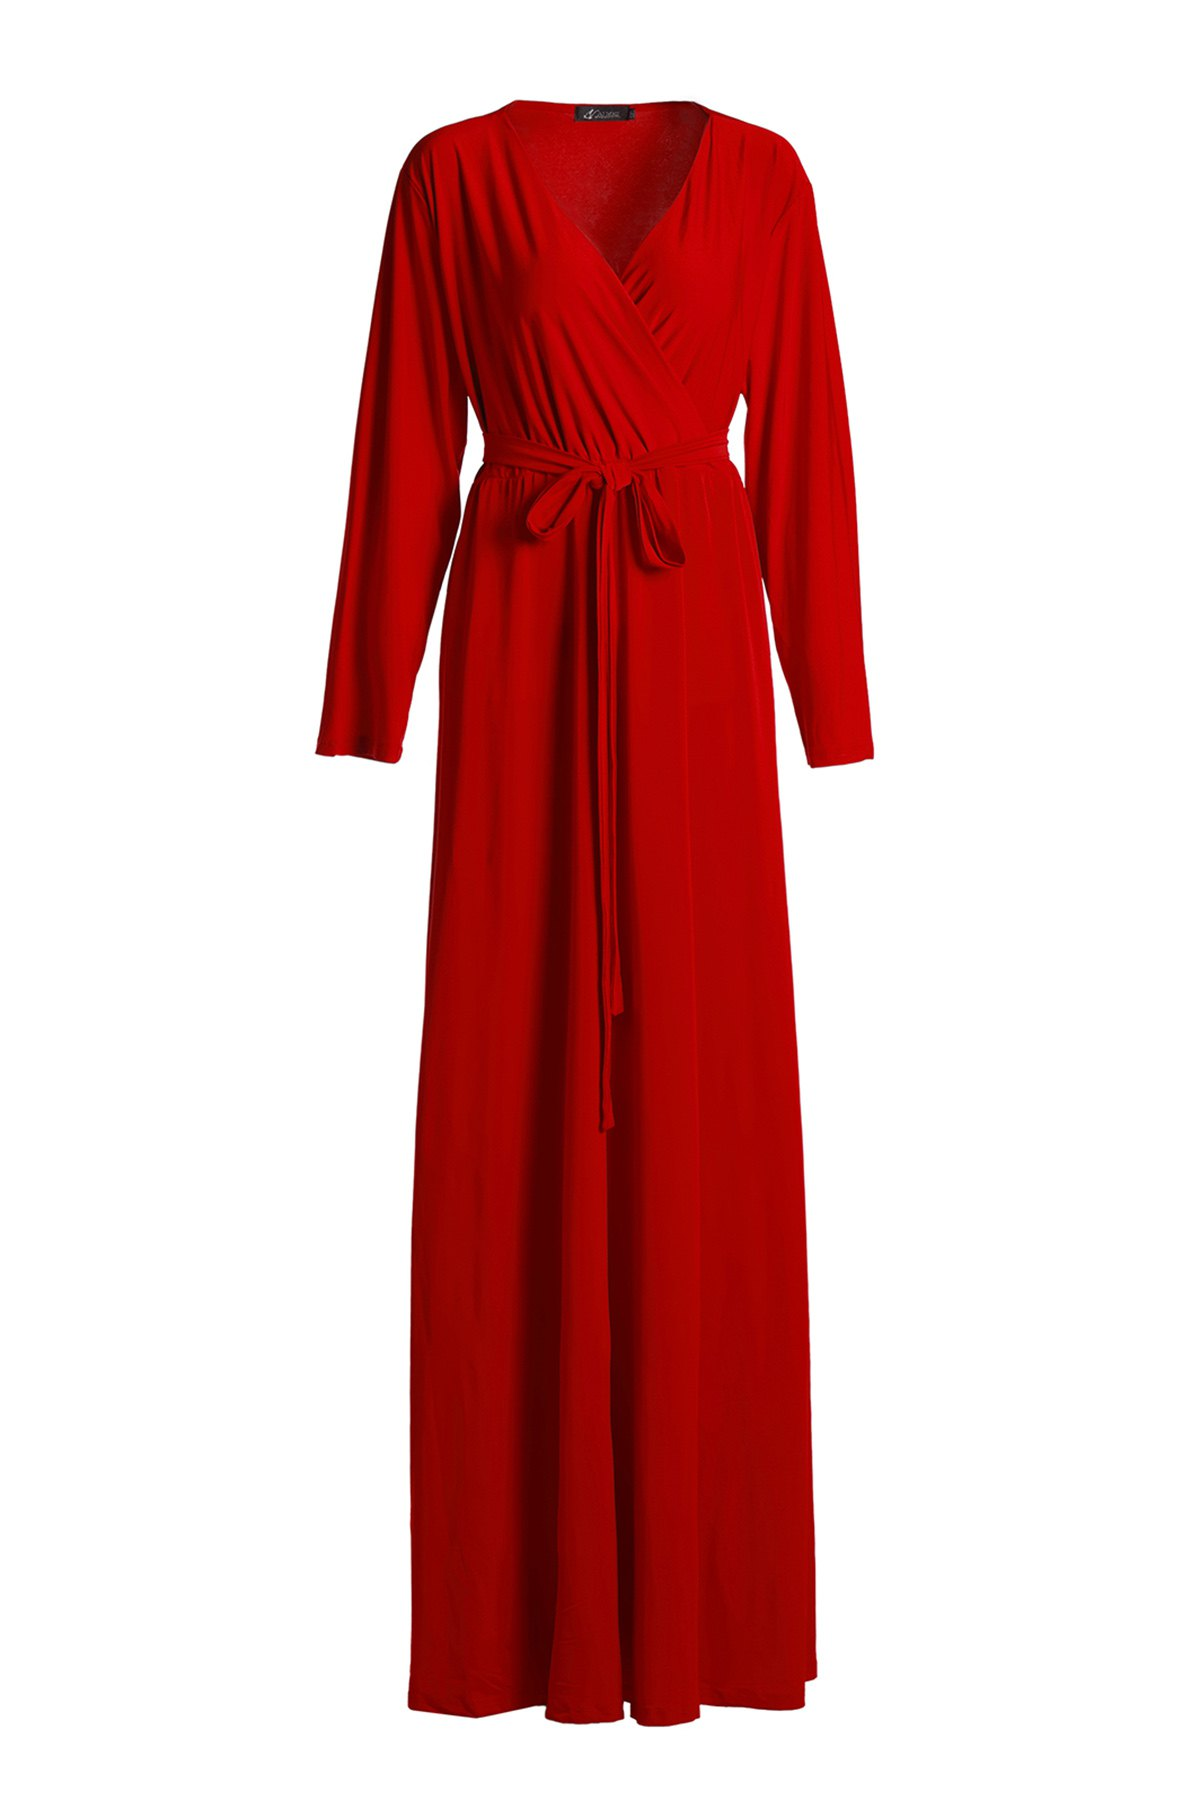 Stylish V-Neck 3/4 Sleeve Solid Color Plus Size Women's Dress - RED 2XL